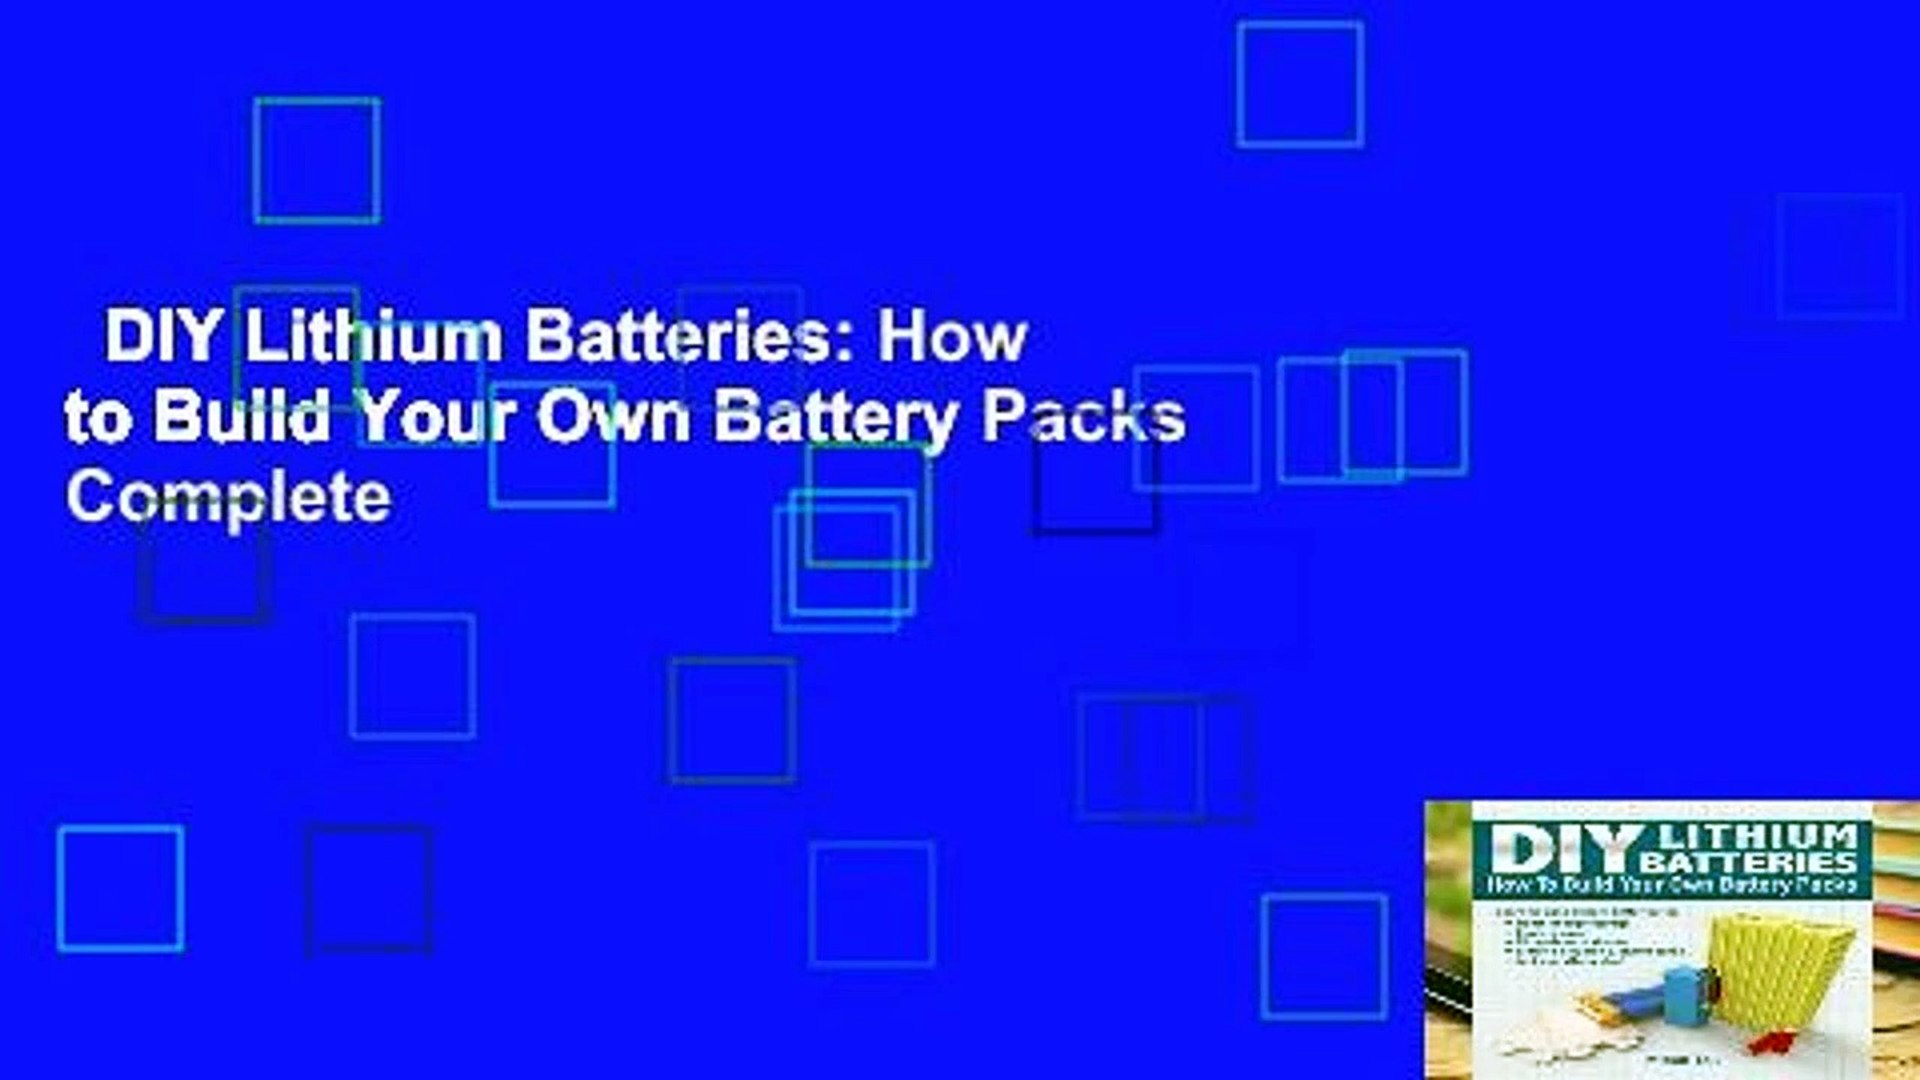 DIY Lithium Batteries: How to Build Your Own Battery Packs Complete